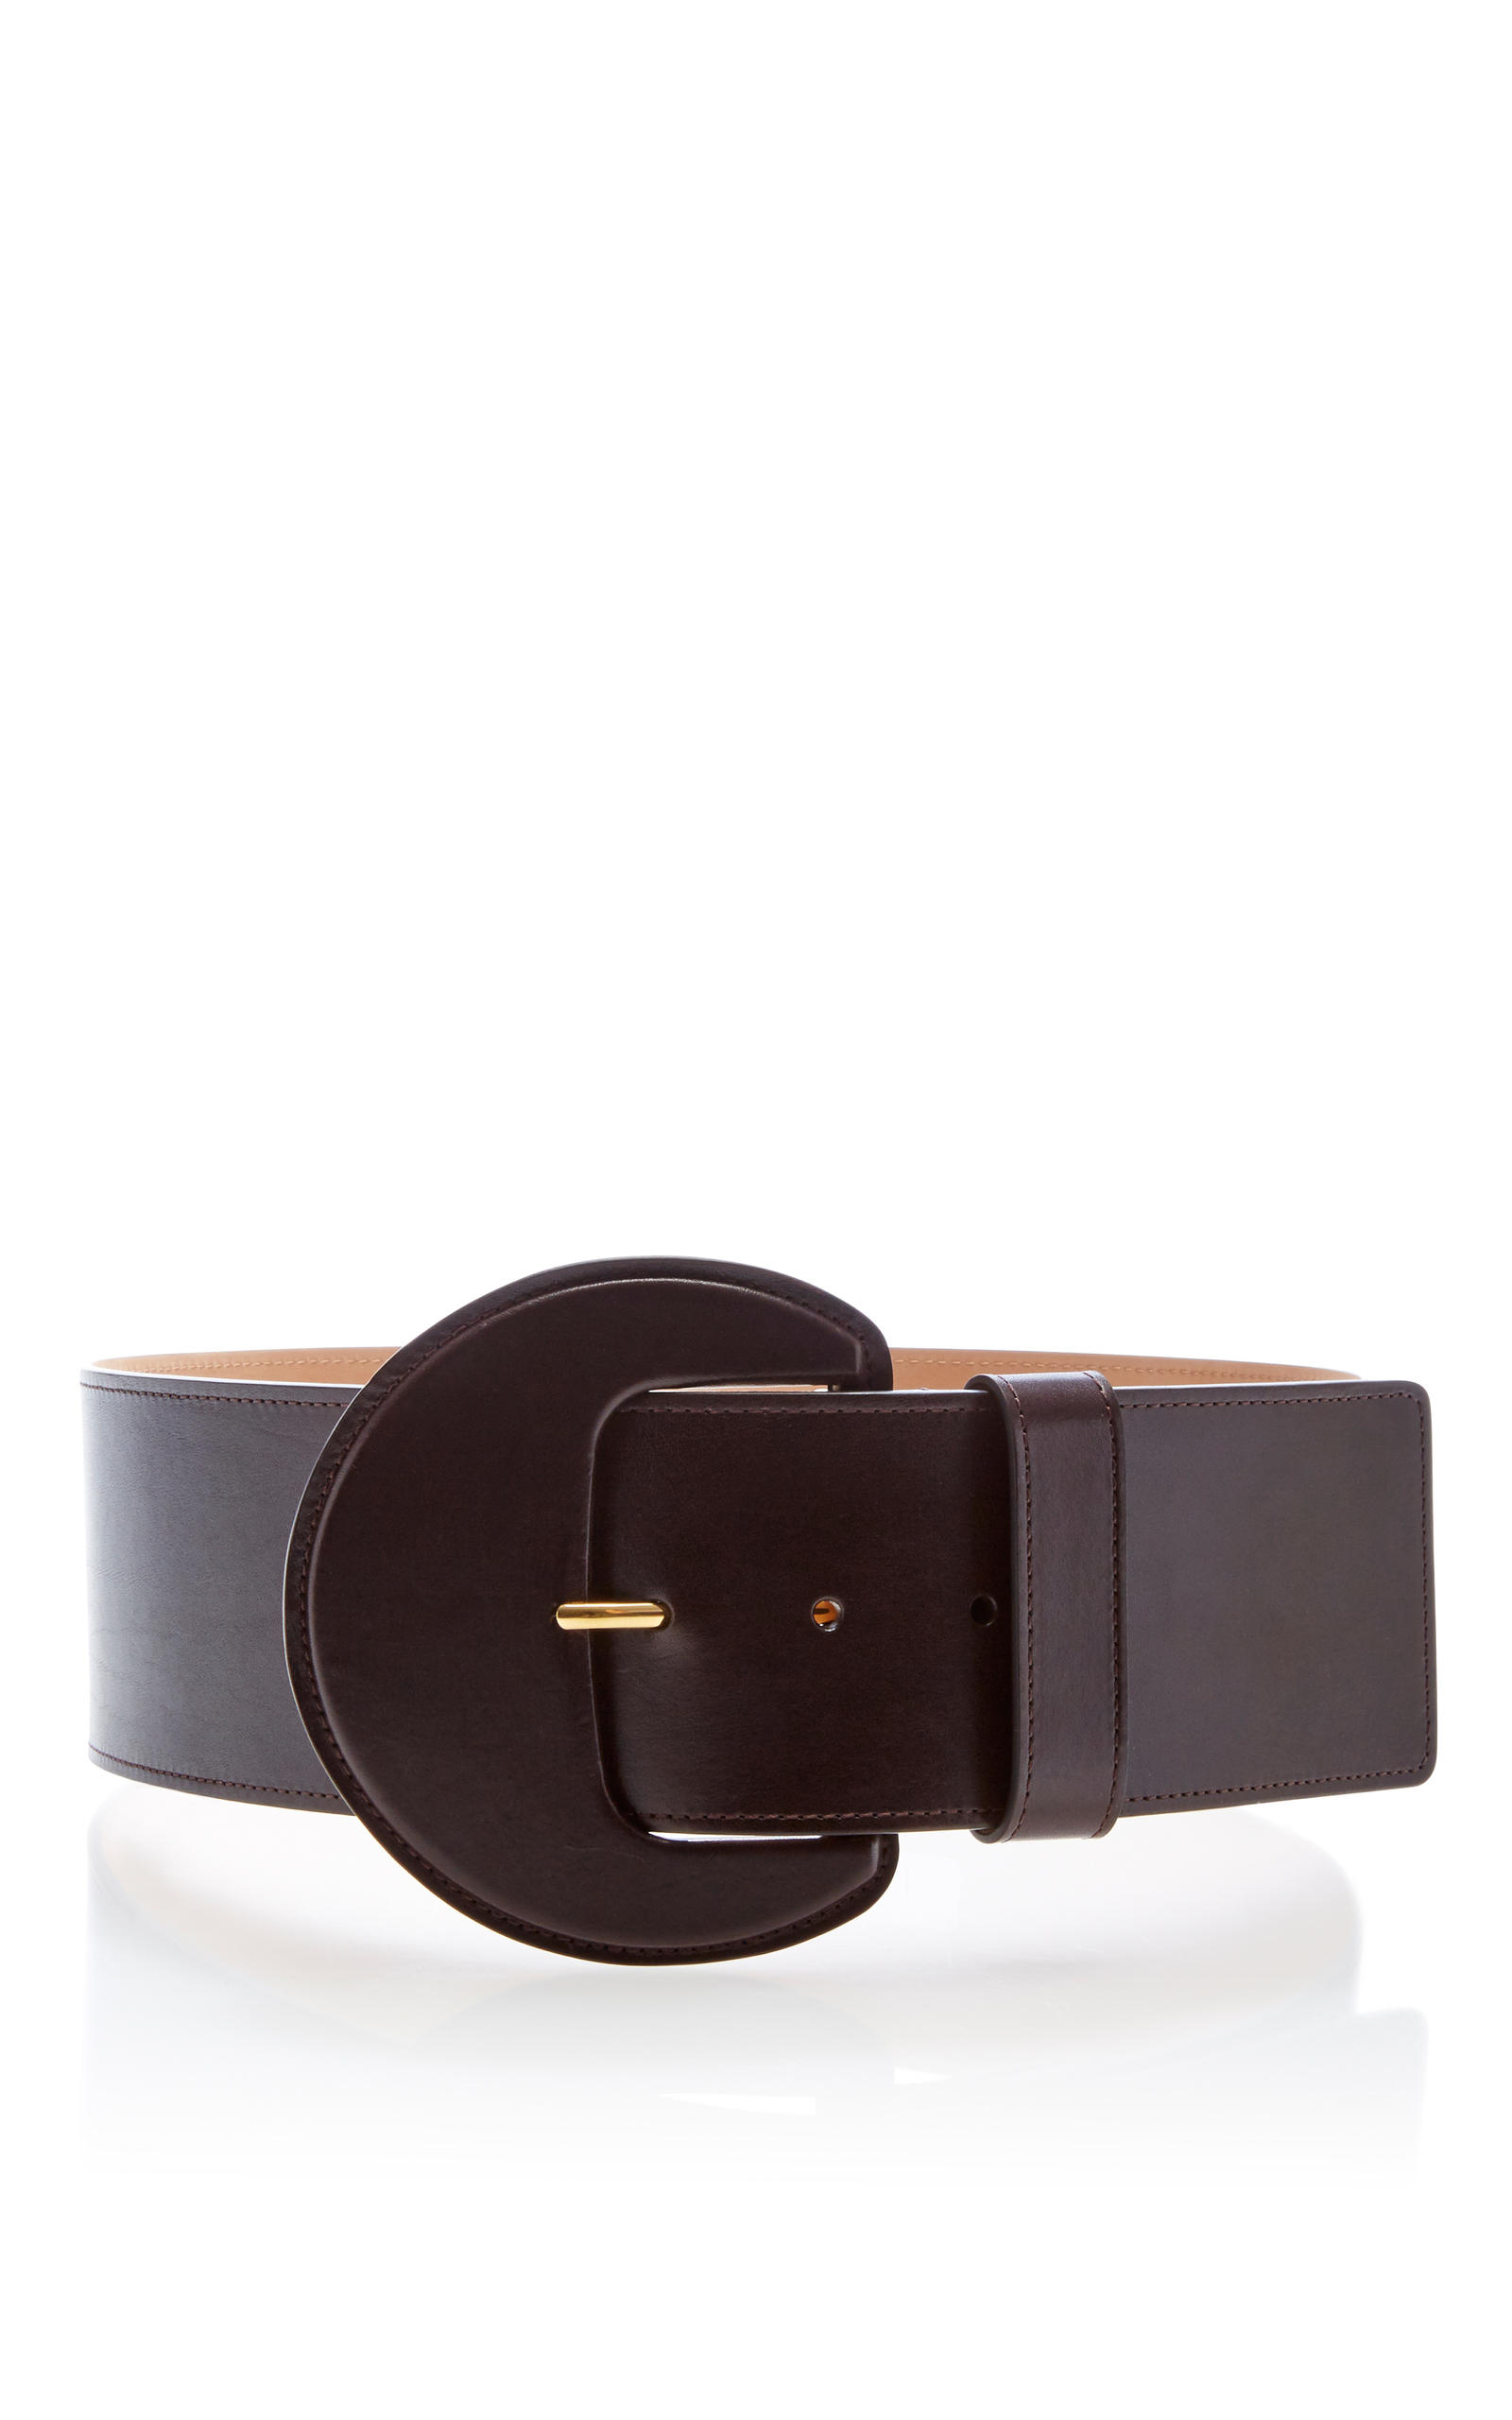 large_michael-kors-brown-extra-large-leather-belt-3.jpg